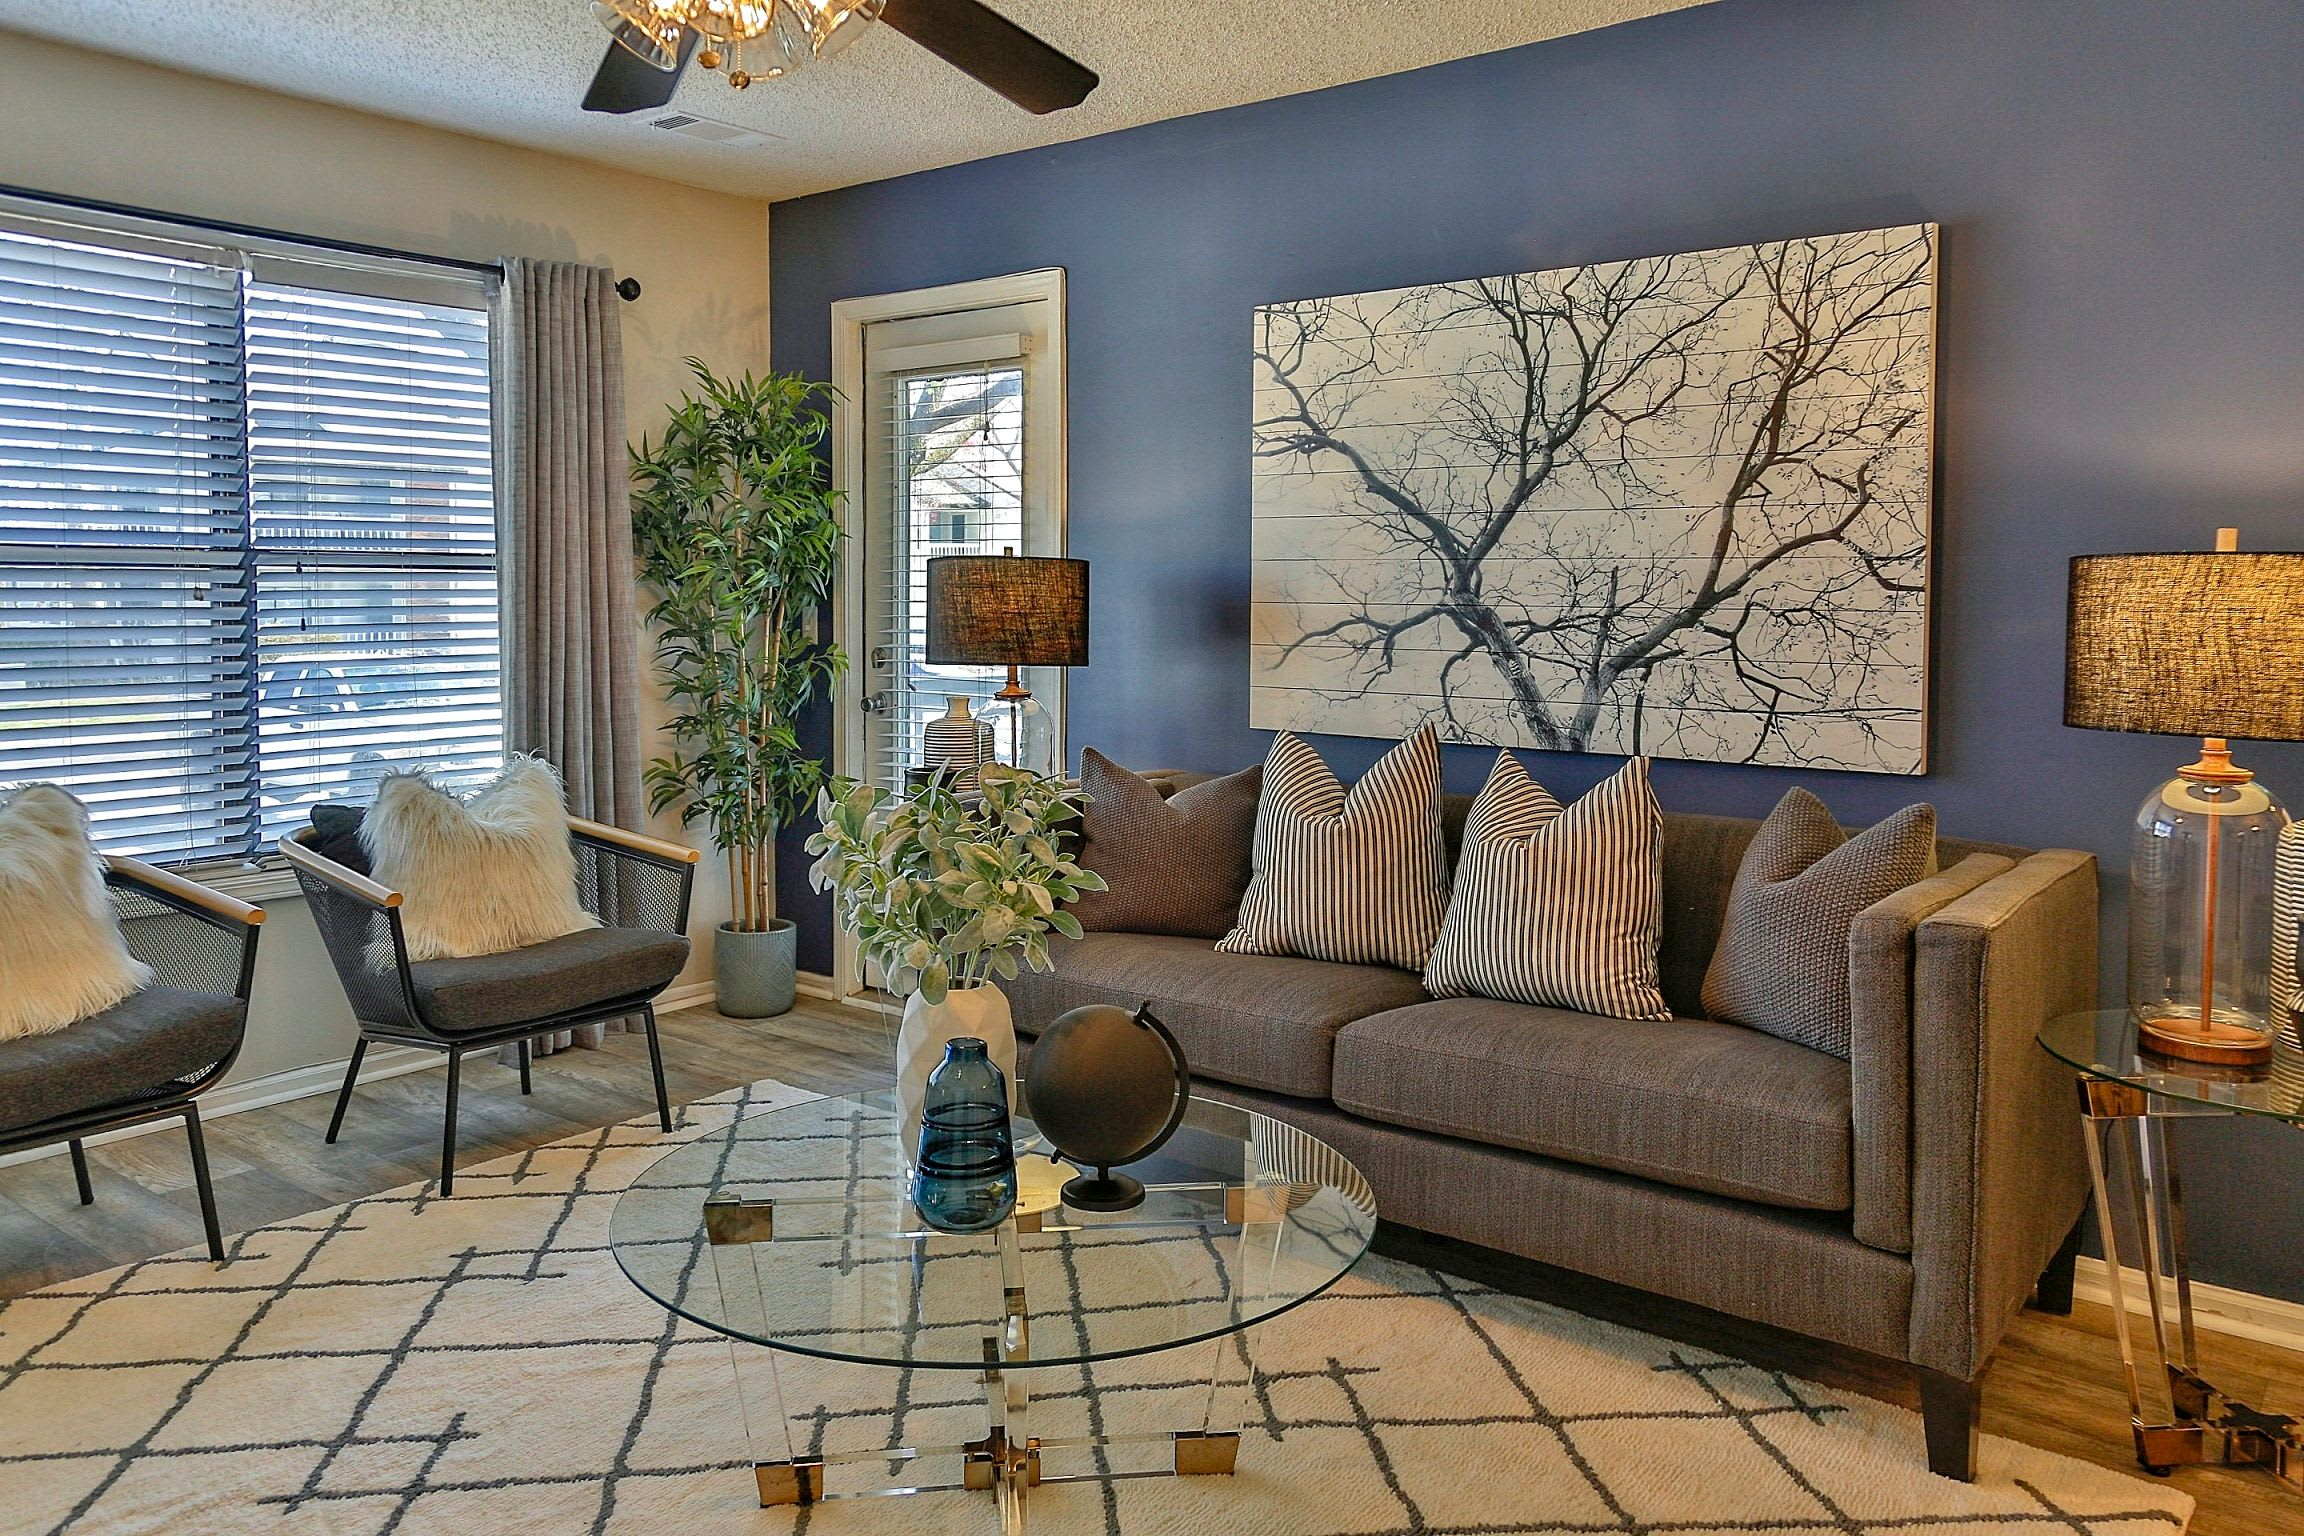 Living room with hardwood floors and custom lighting in model home at Lyric on Bell in Antioch, Tennessee